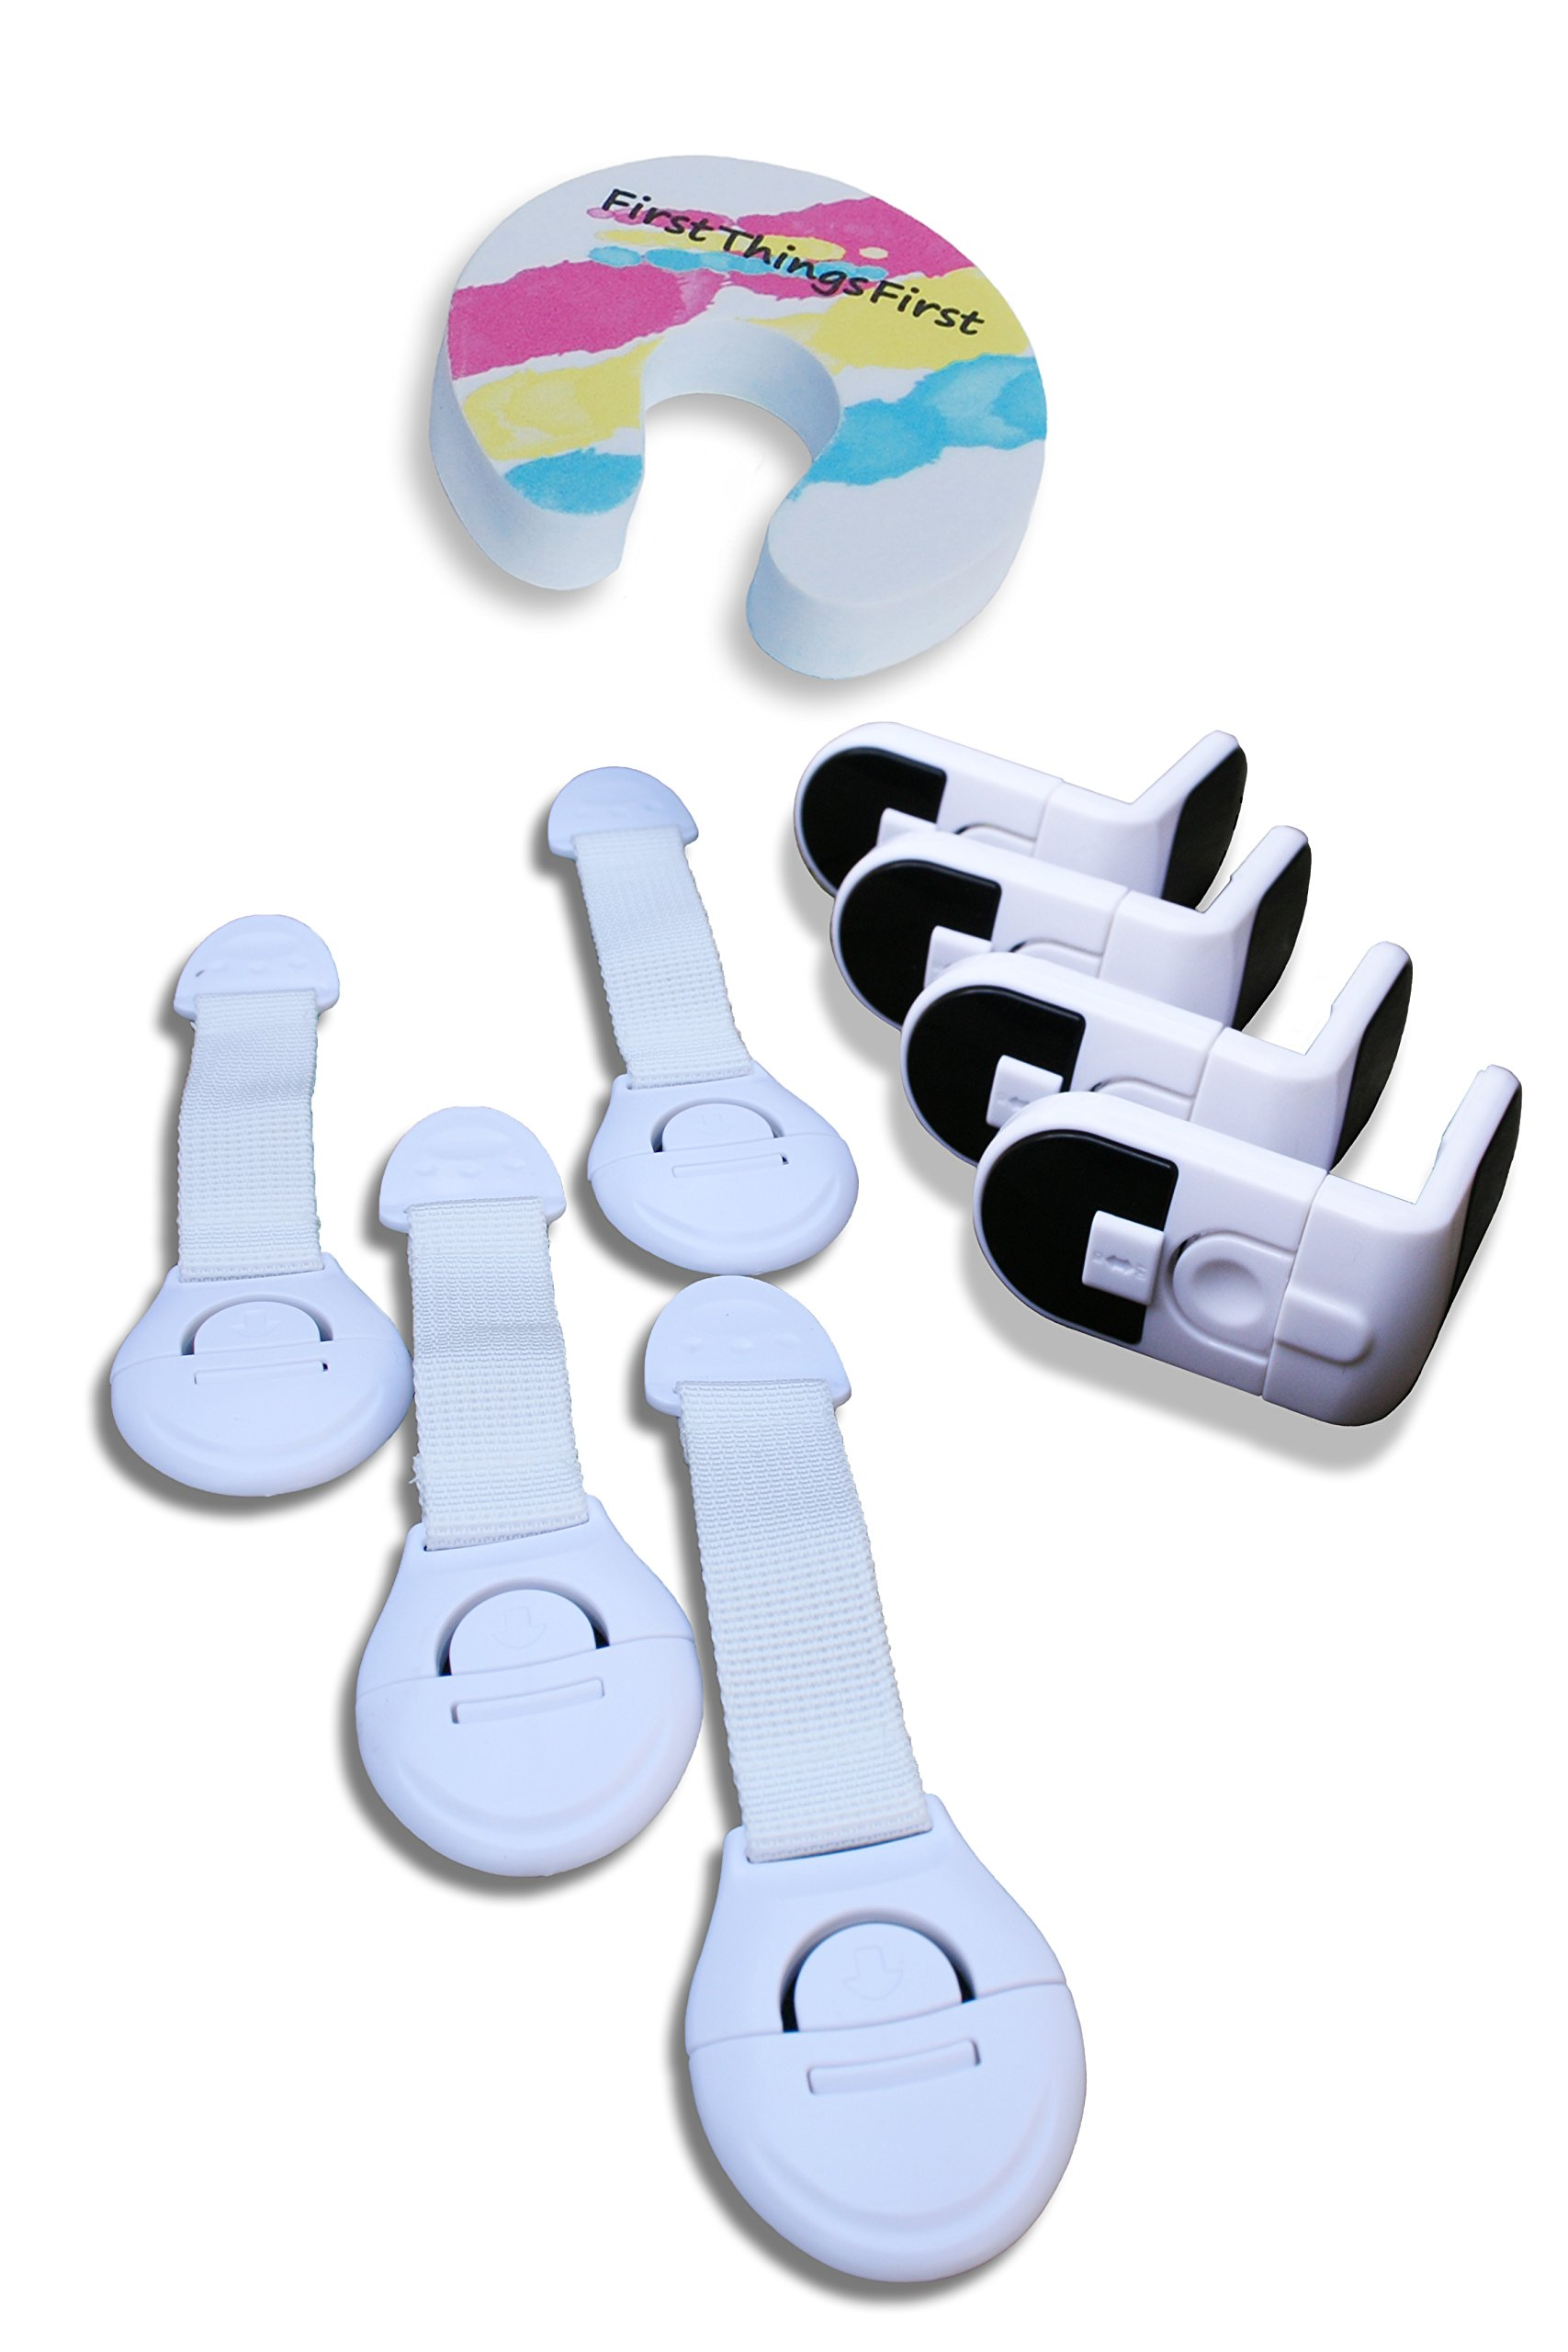 CHILD SAFETY CABINET LOCKS - Baby Cabinet Safety Latches, Baby Proof Door Guard Door Monkey, Baby Proofing Fridge & Drawer Locks, Toilet Locks for Toddlers | A Complete Child Proofing Baby Safety Kit